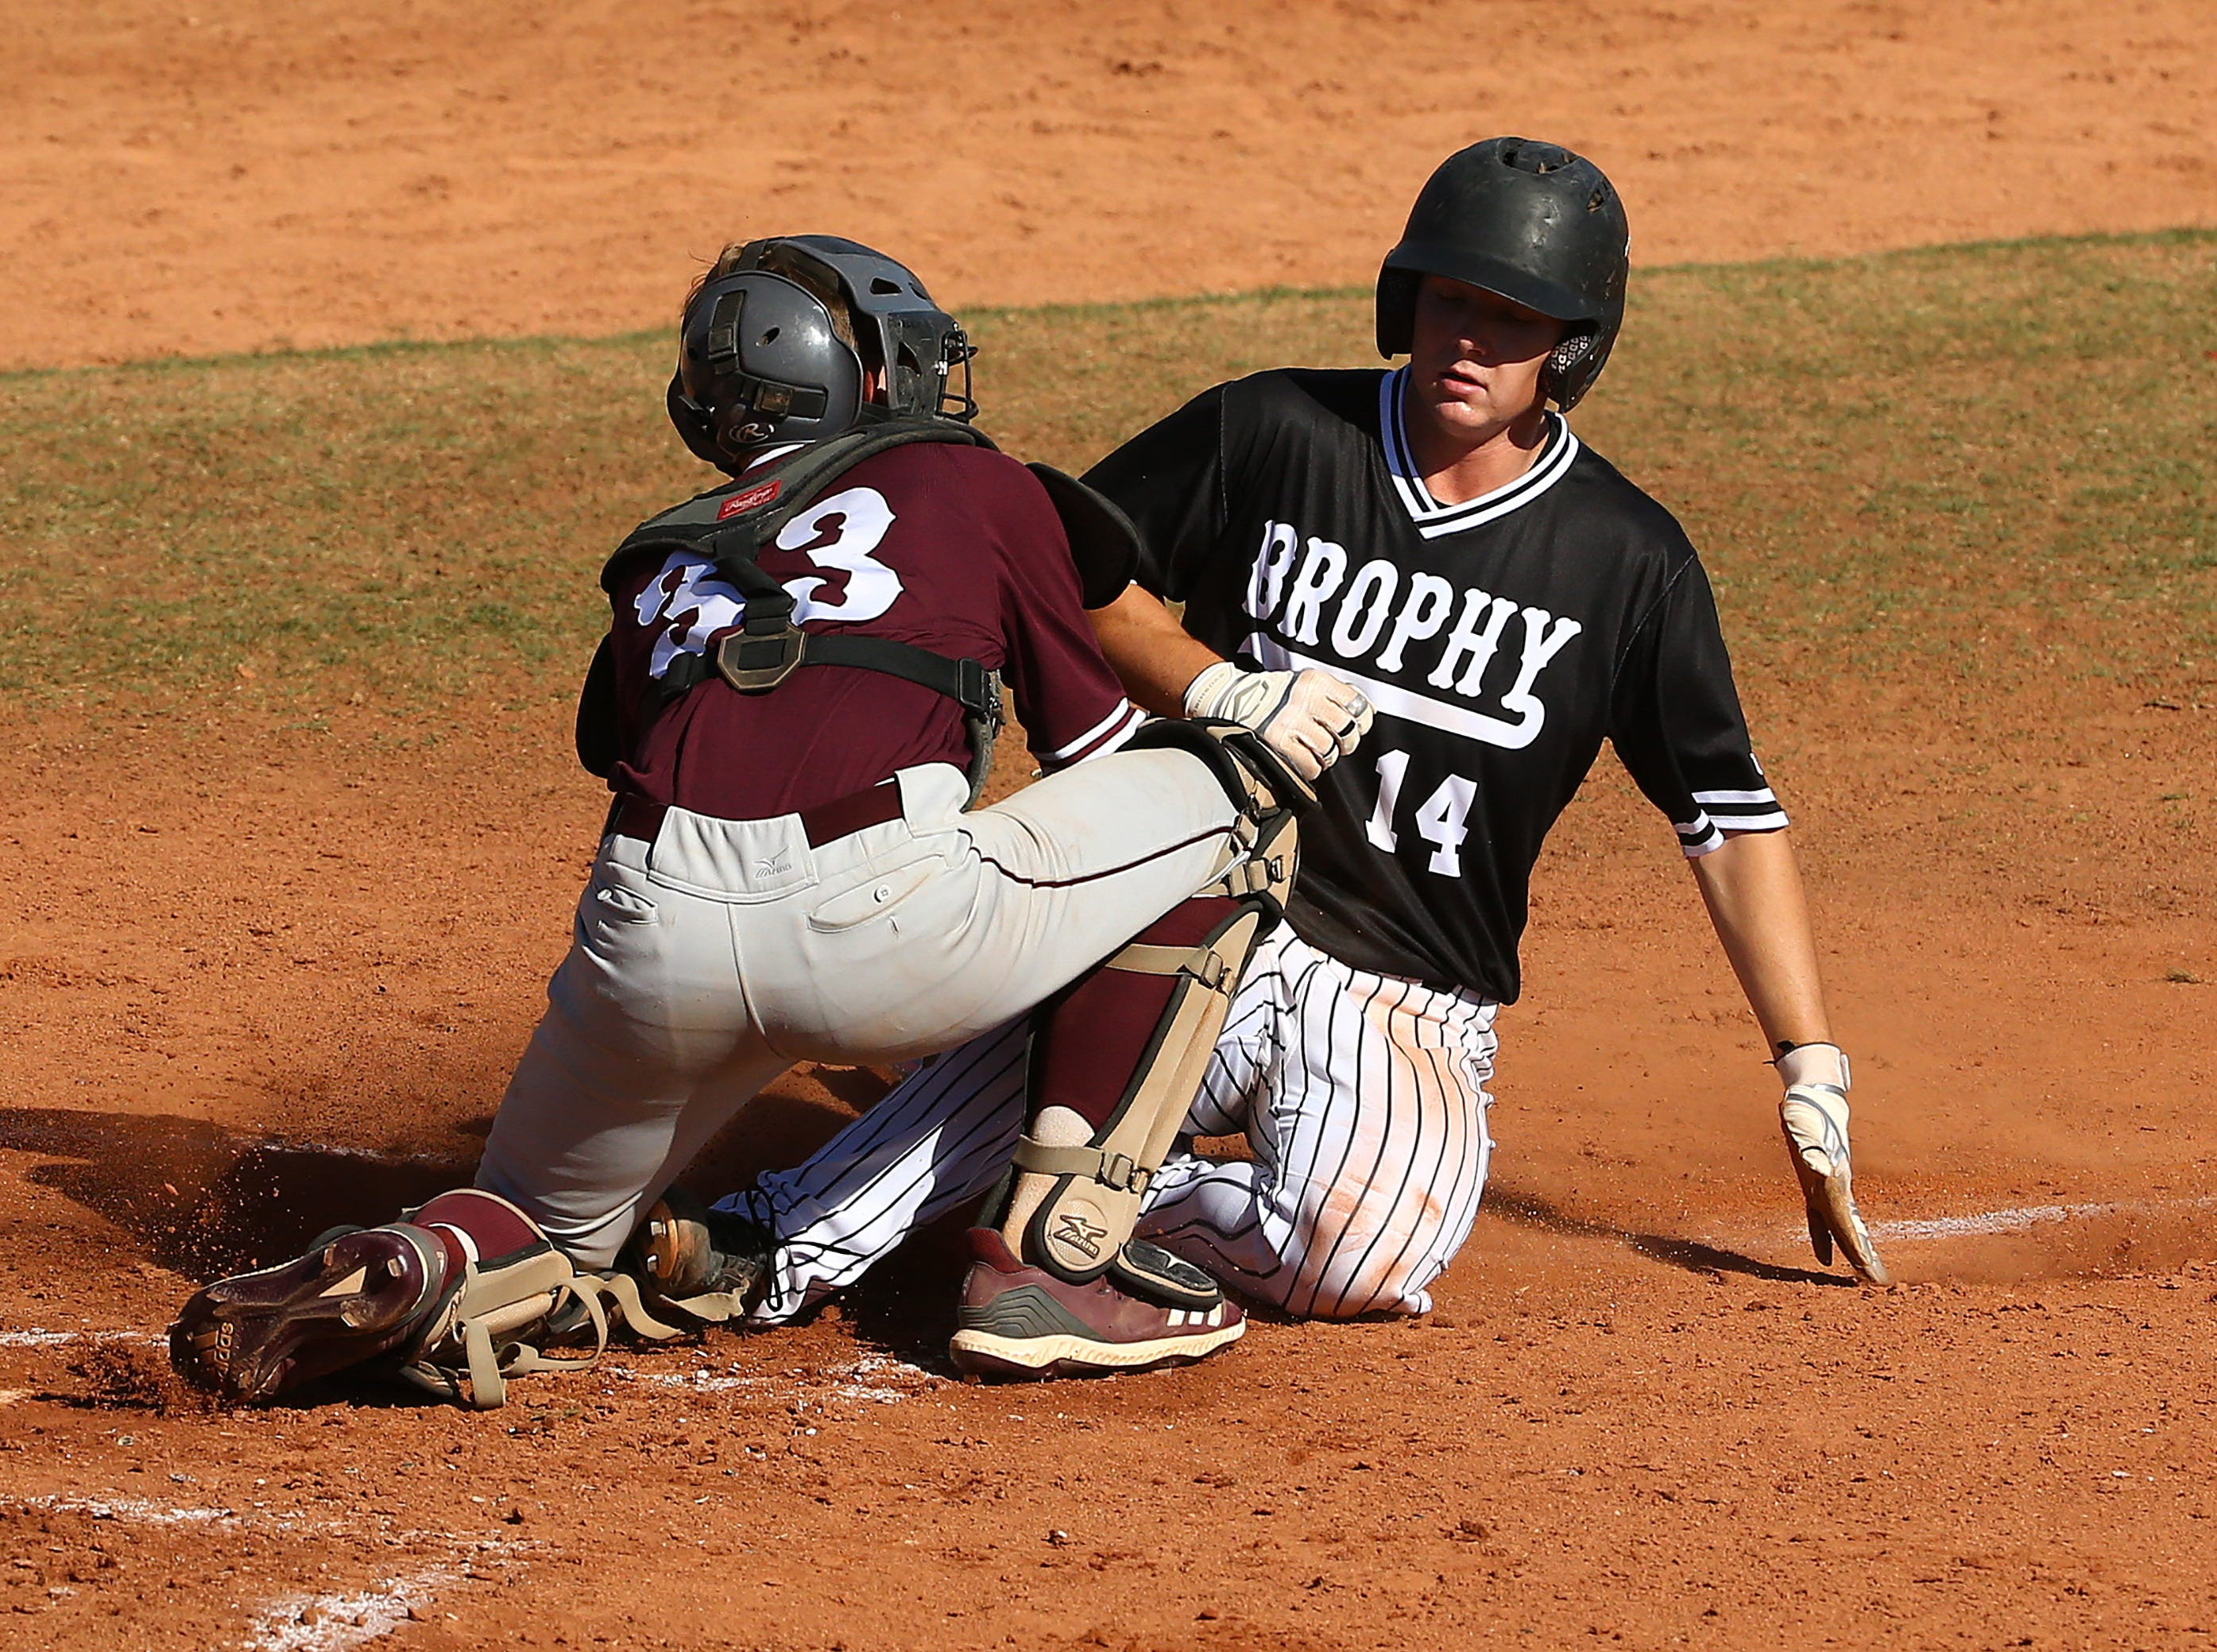 Mountain Ridge High catcher Olson Garrett (33) tags-out Brophy Prep's Will Worthington (14) in the first inning on Apr. 24, 2019 in Phoenix, Ariz